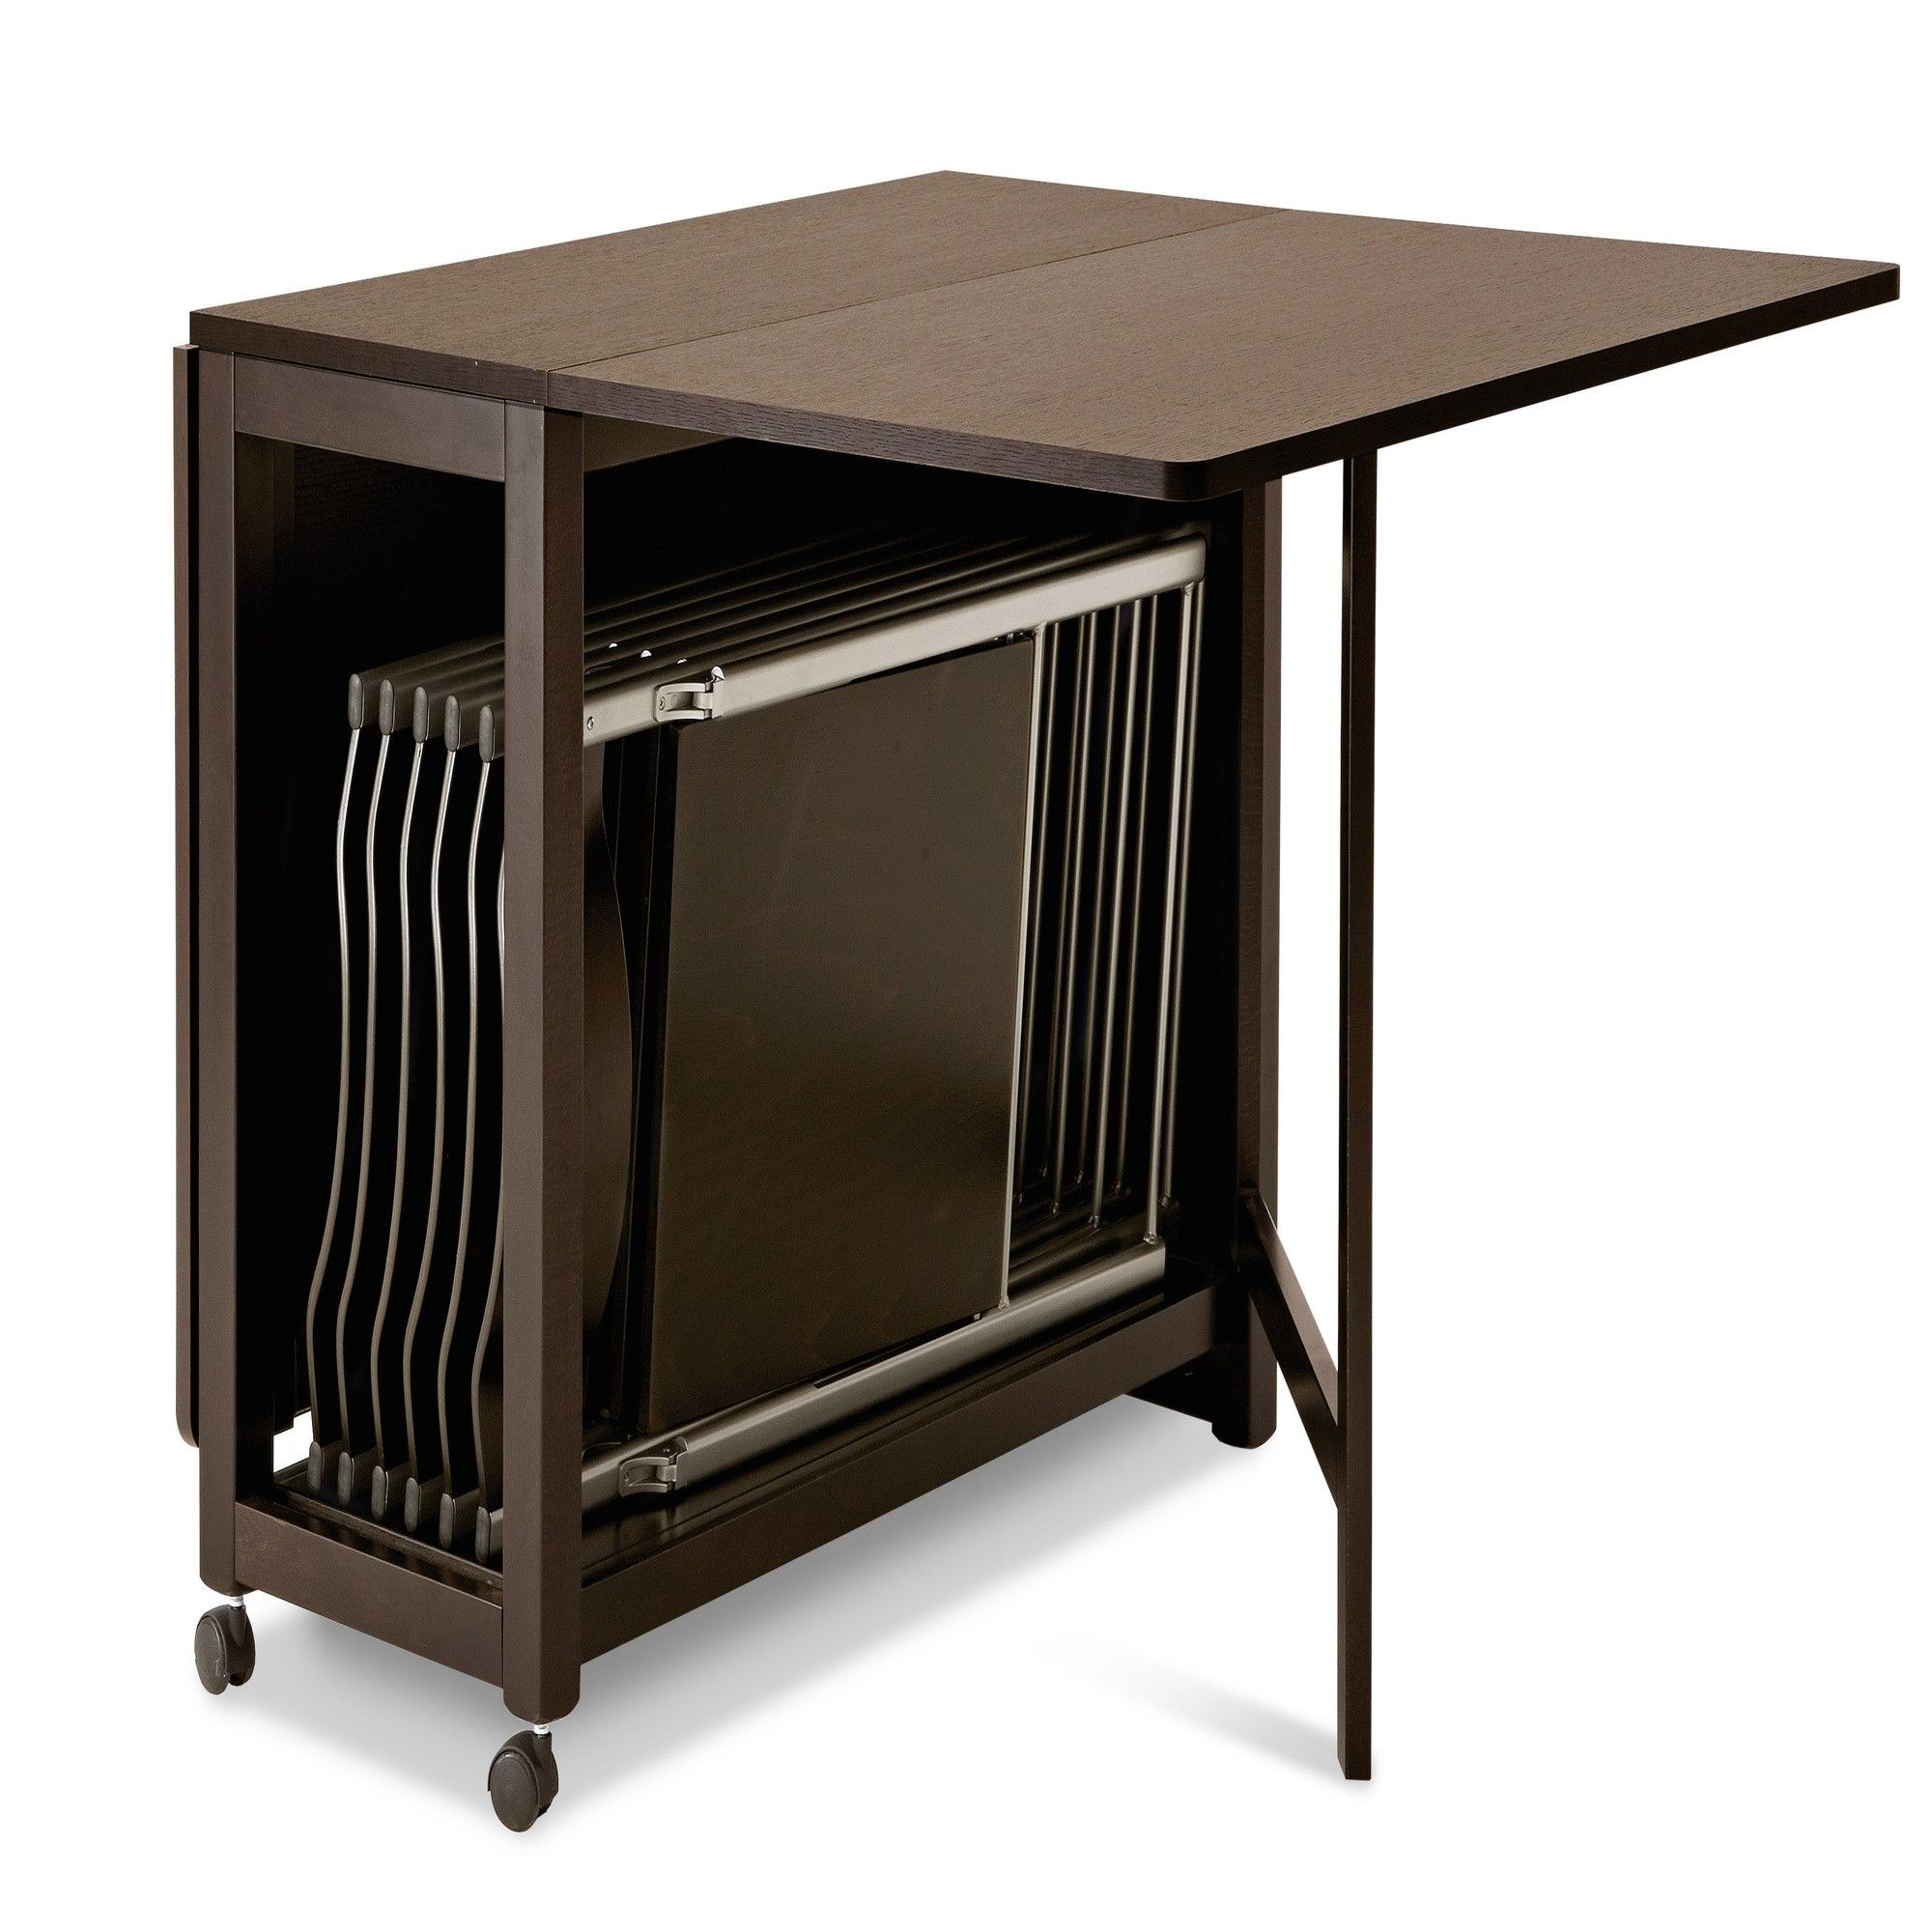 Folding Kitchen Tables Pantry Shelving Systems Sculpture Of Good Space Saver Dining Set Perfect